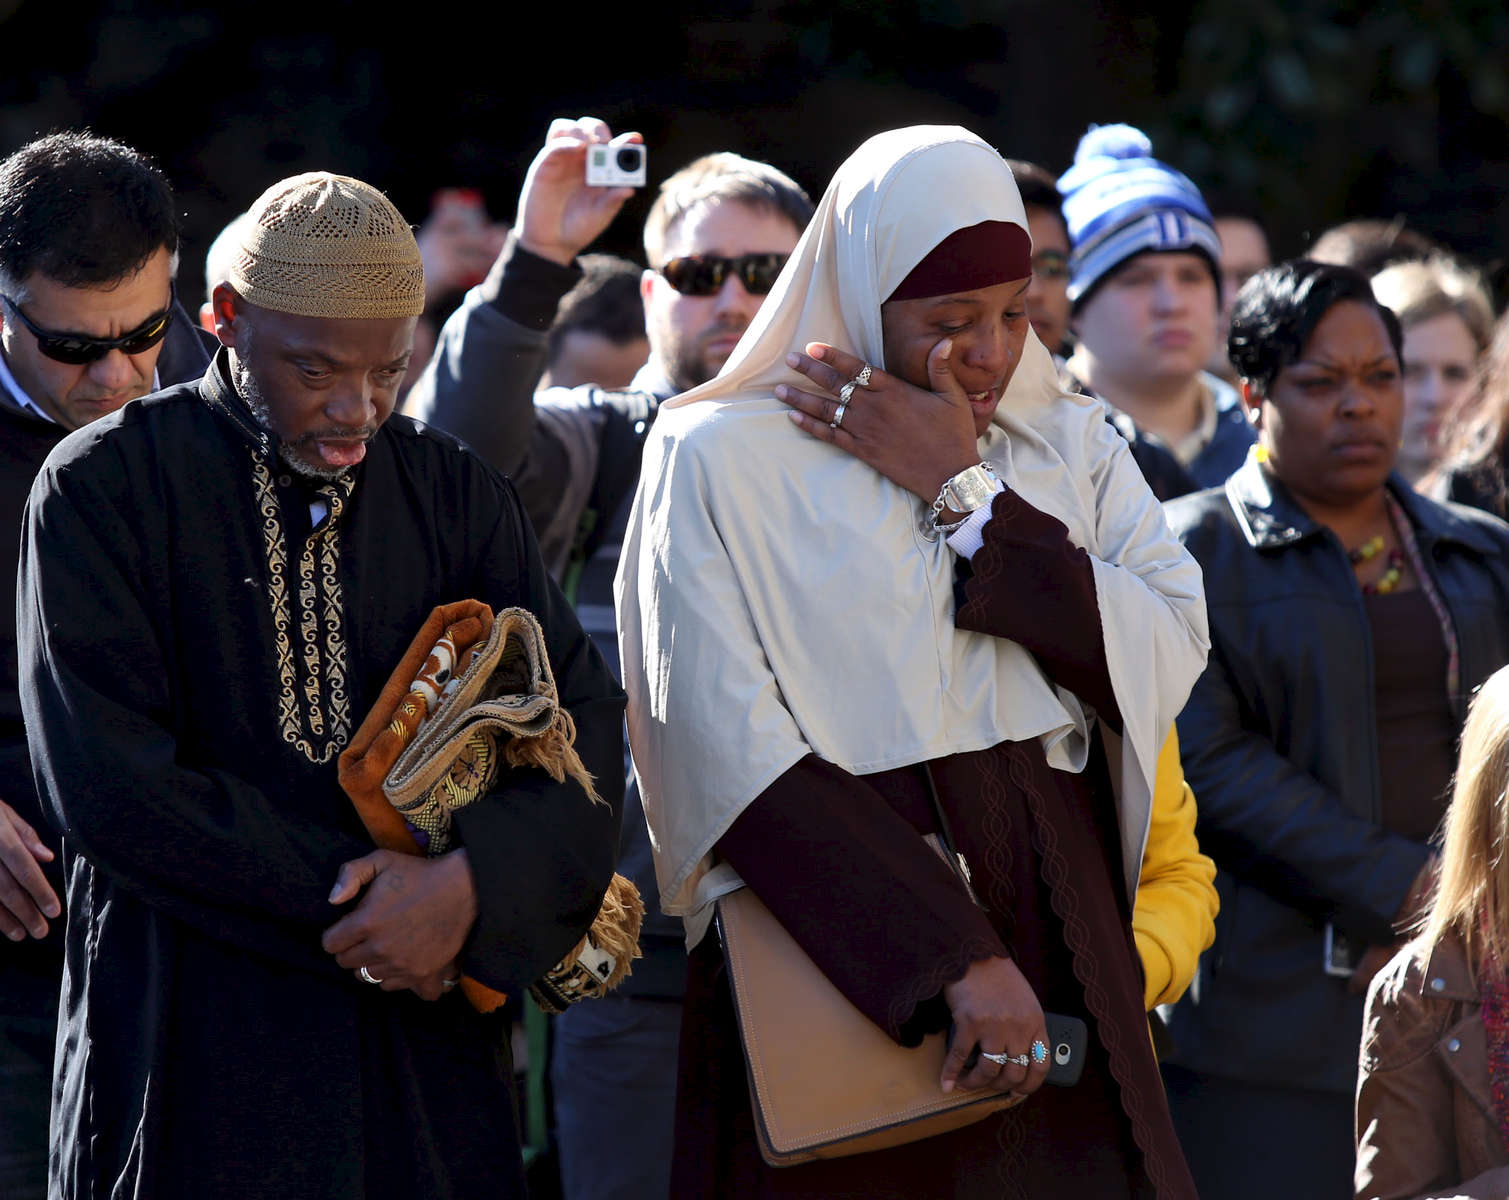 Third Place | General NewsAl Drago, Elon UniversityNija McKay, originally from Brooklyn but now living in Durham, wipes a tear from her face alongside her husband, Aziz, during the call to prayer outside the steps at the Duke Chapel on Friday, January 16, 2015 in Durham, North Carolina. Duke University cited security reasons for reversing their decision to allow the prayer to be played from the chapel bell tower. Instead the prayer was broadcast from a public address system on the steps of the chapel as the member reading the prayer was just behind the chapel door.